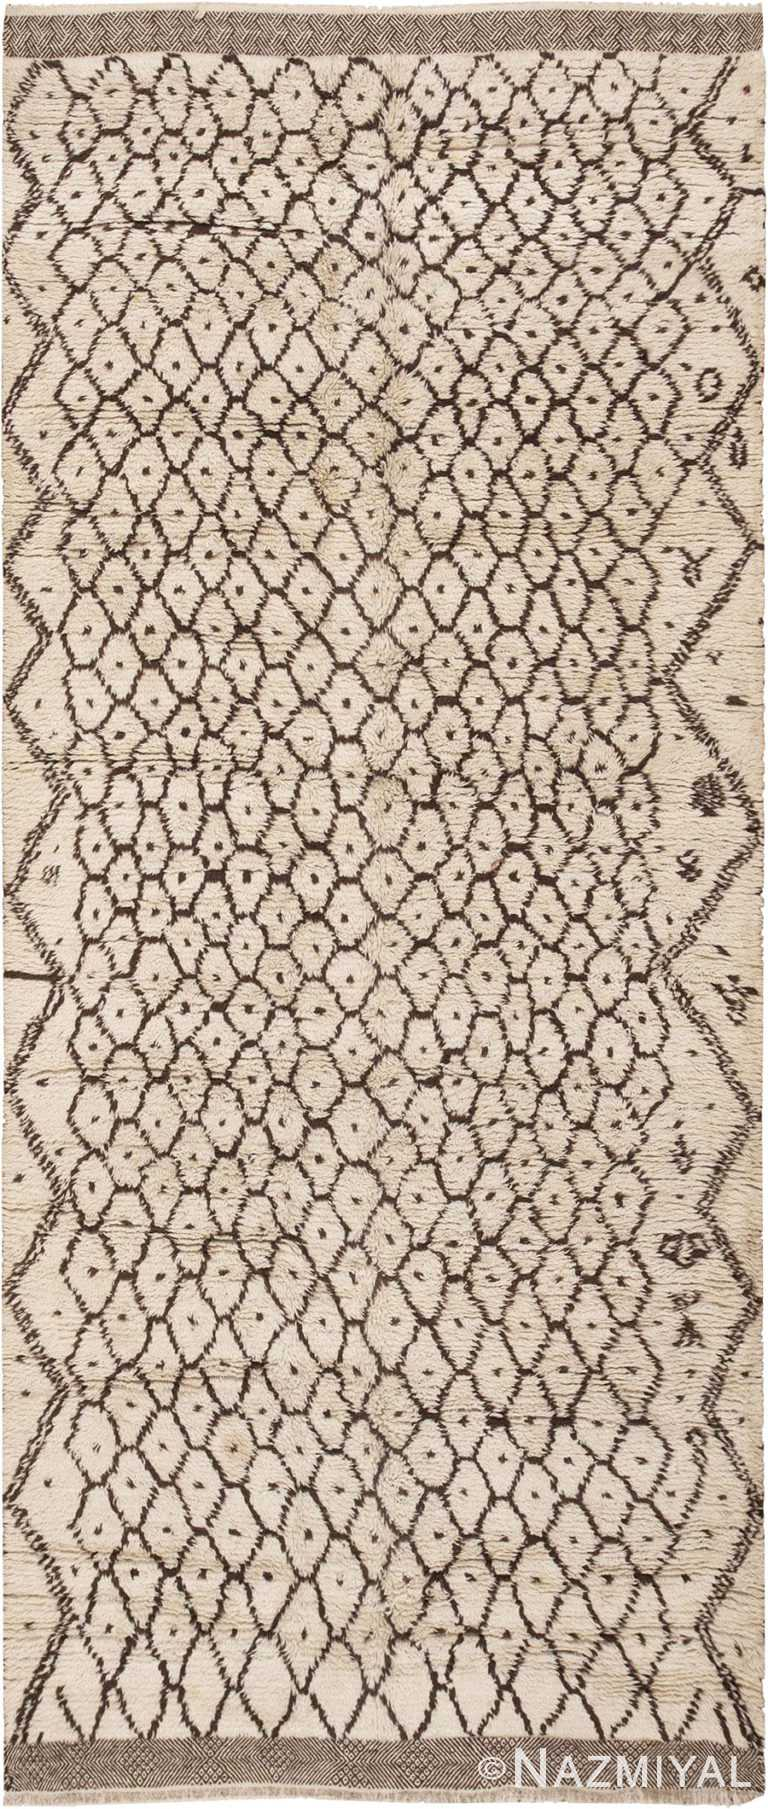 Beni Ourain Vintage Moroccan Rug #46021 by Nazmiyal Antique Rugs